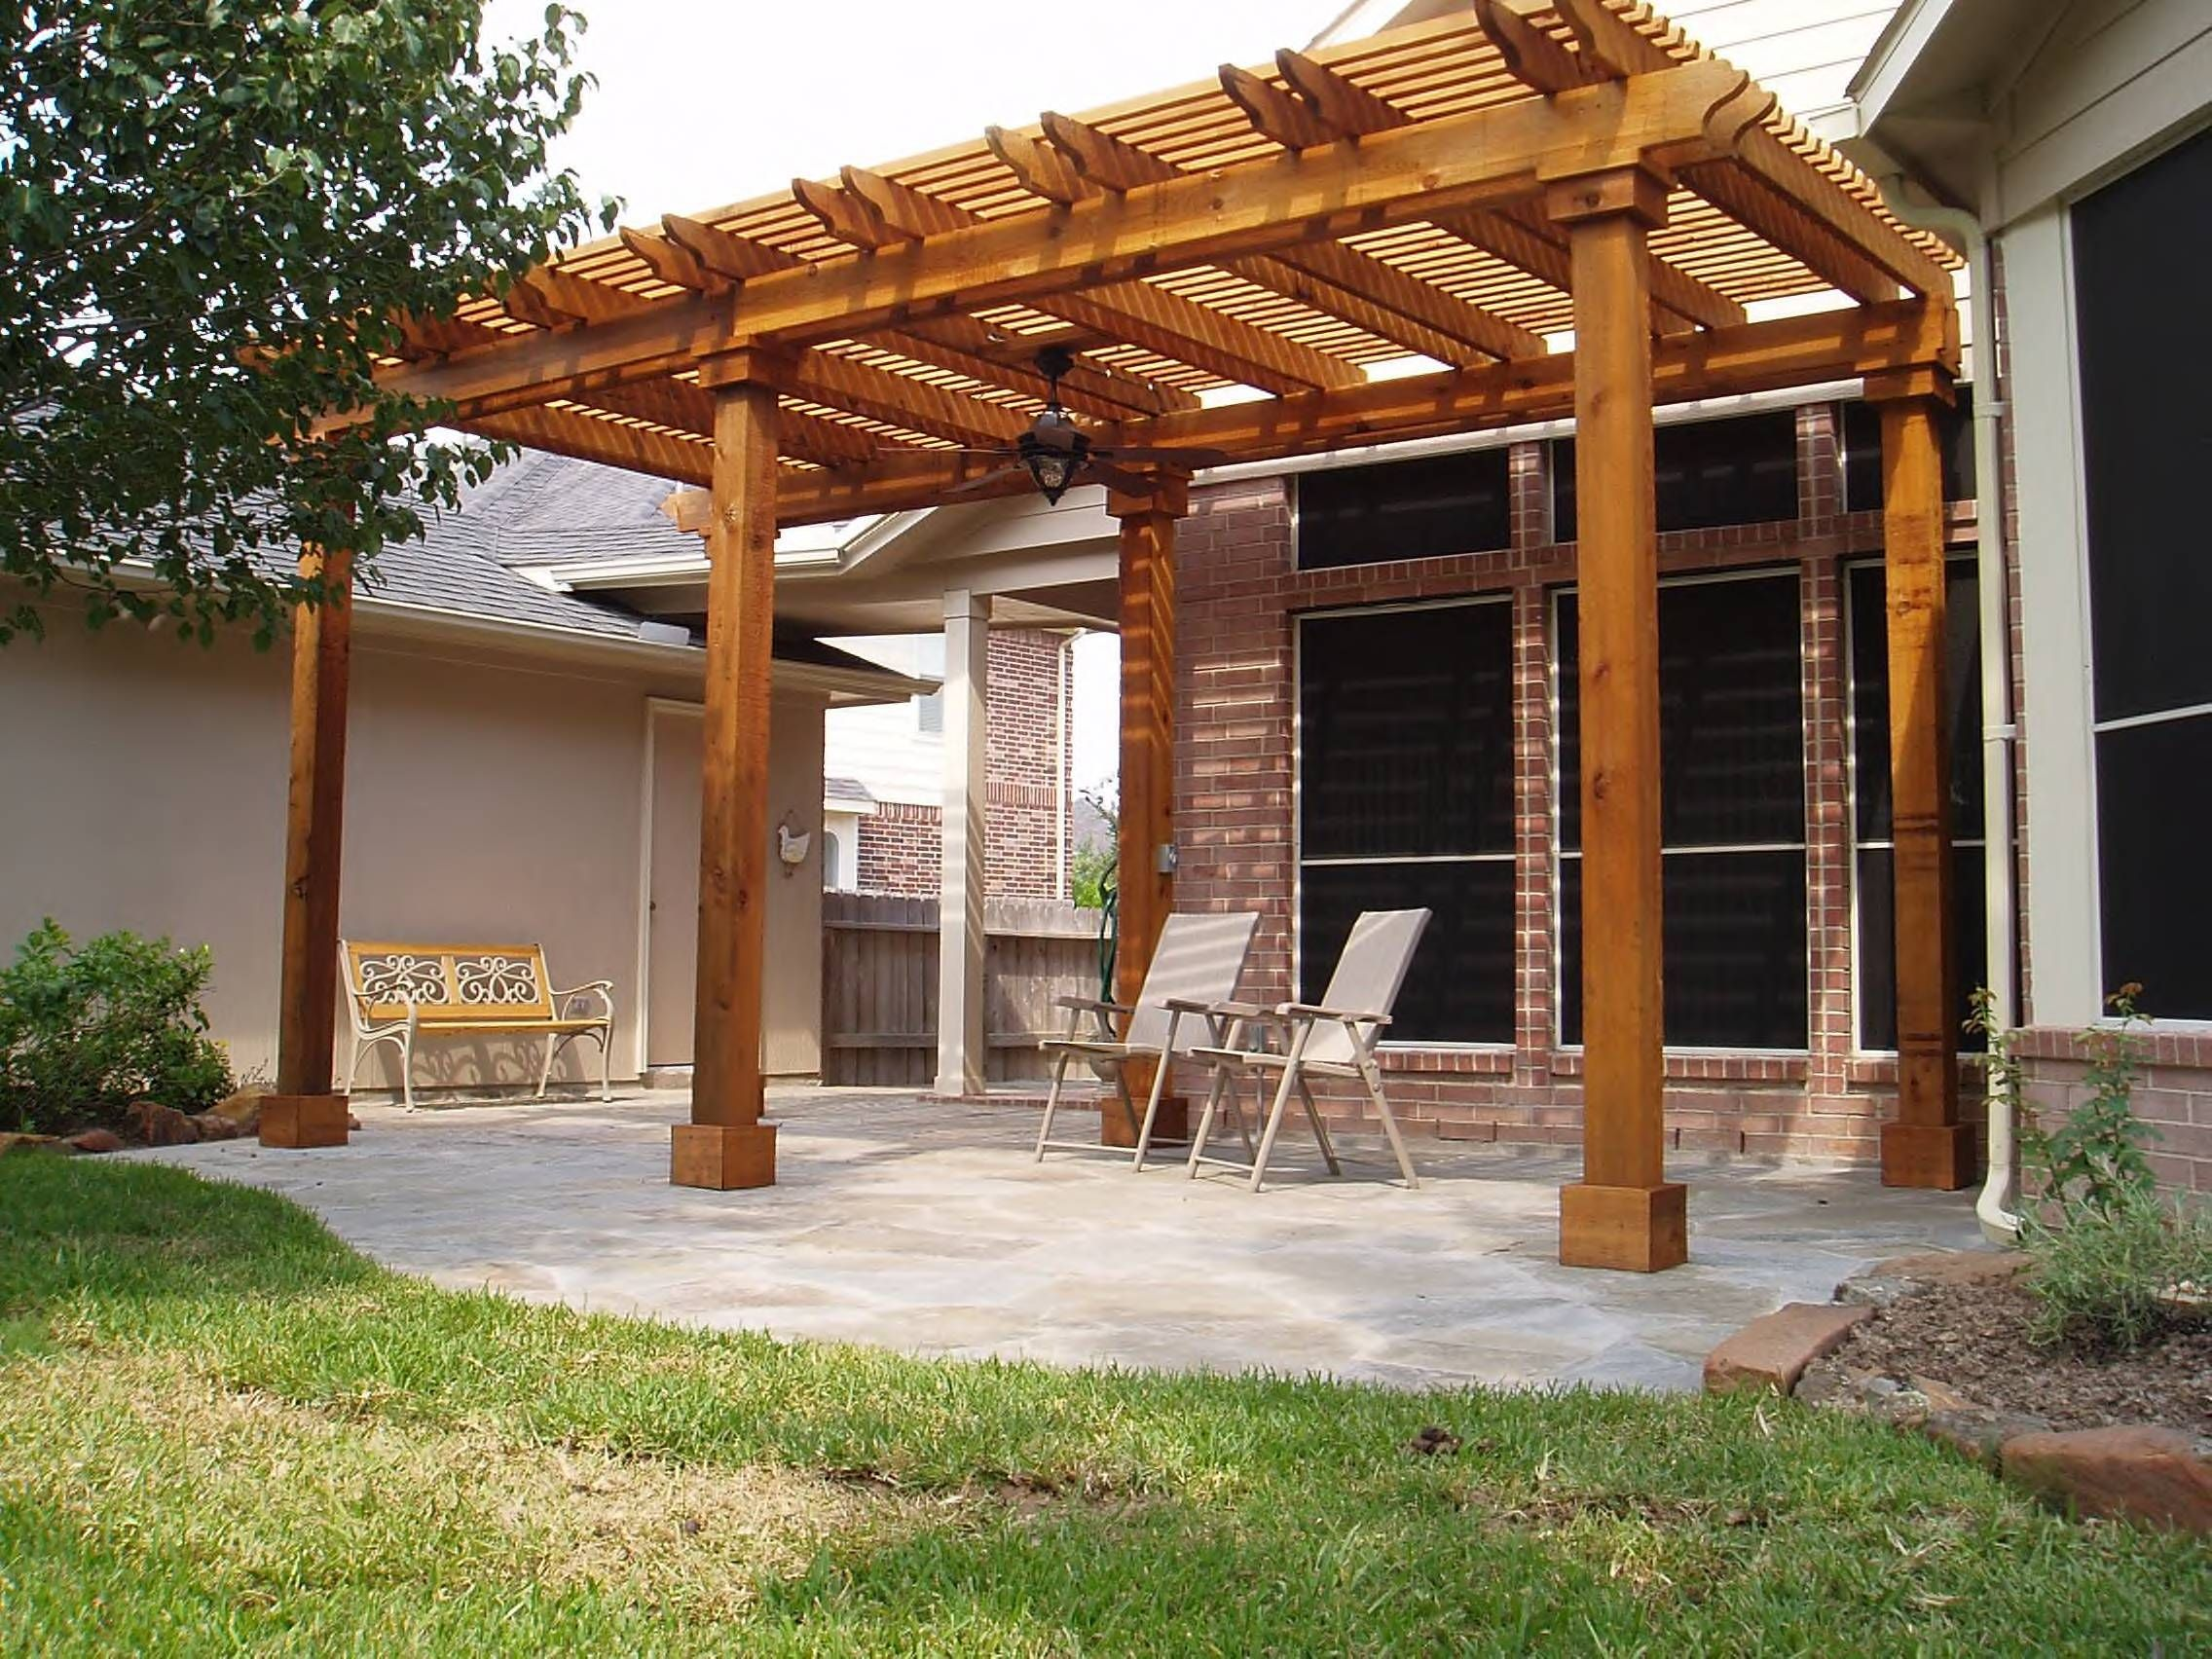 Image of: diy patio ideas on a budget   Deck ideas in 2018 ...